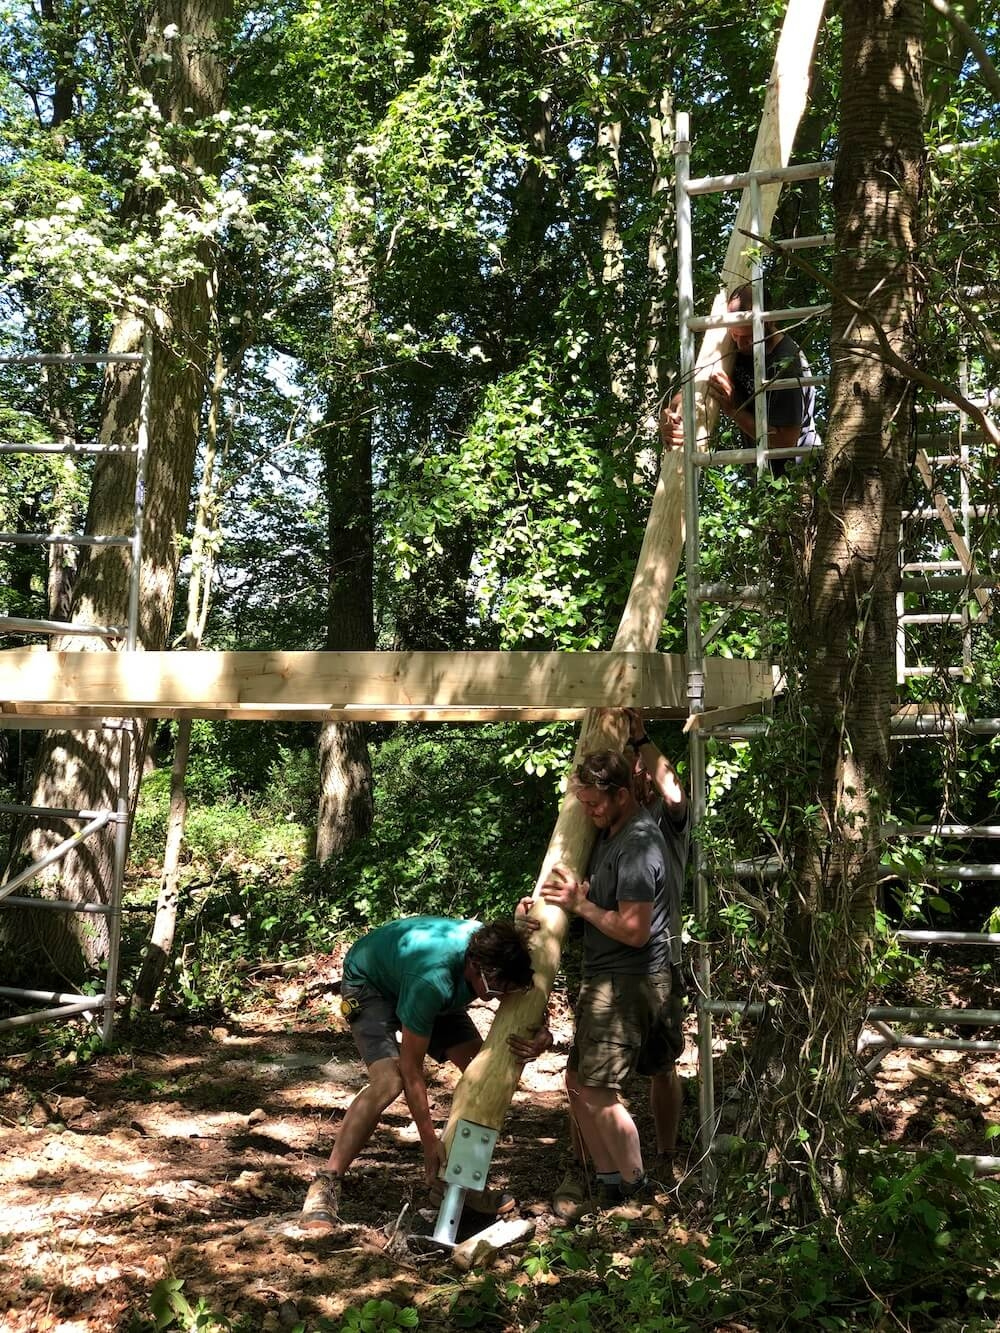 Installing a pole on site for Adventure play